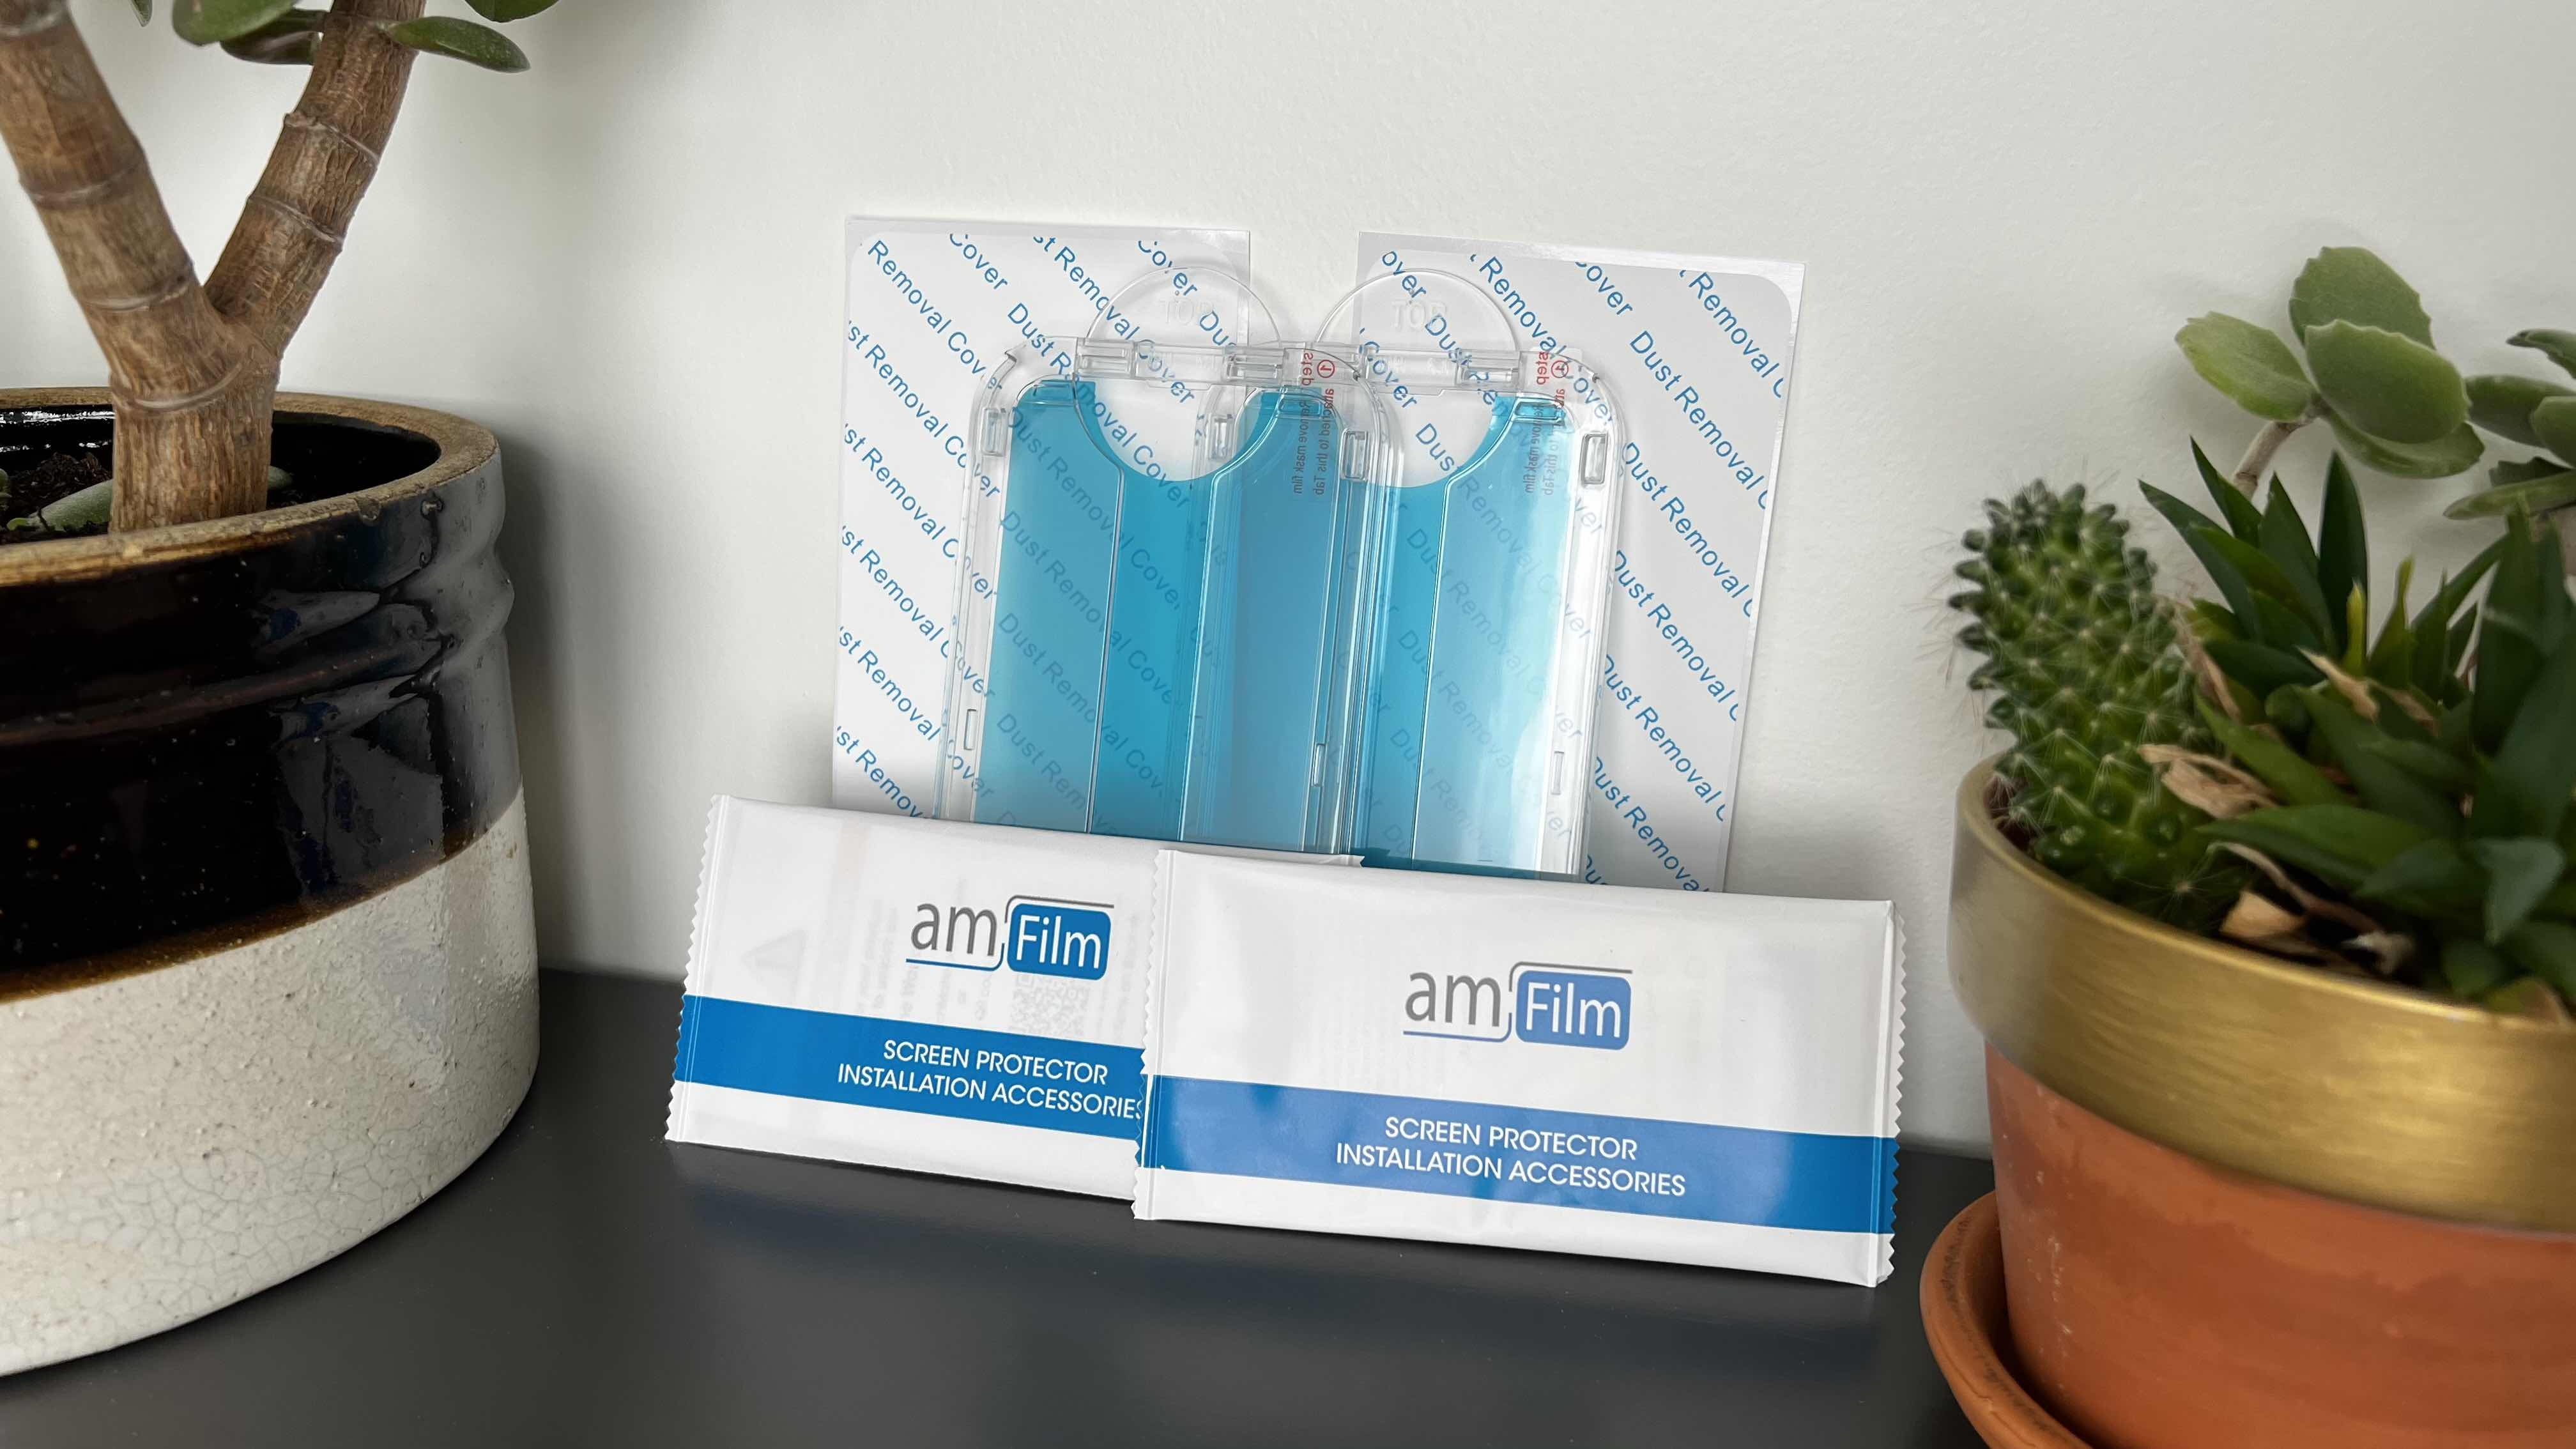 amFilm OneTouch Glass Screen Protectors for iPhone 13 - everything included in the box